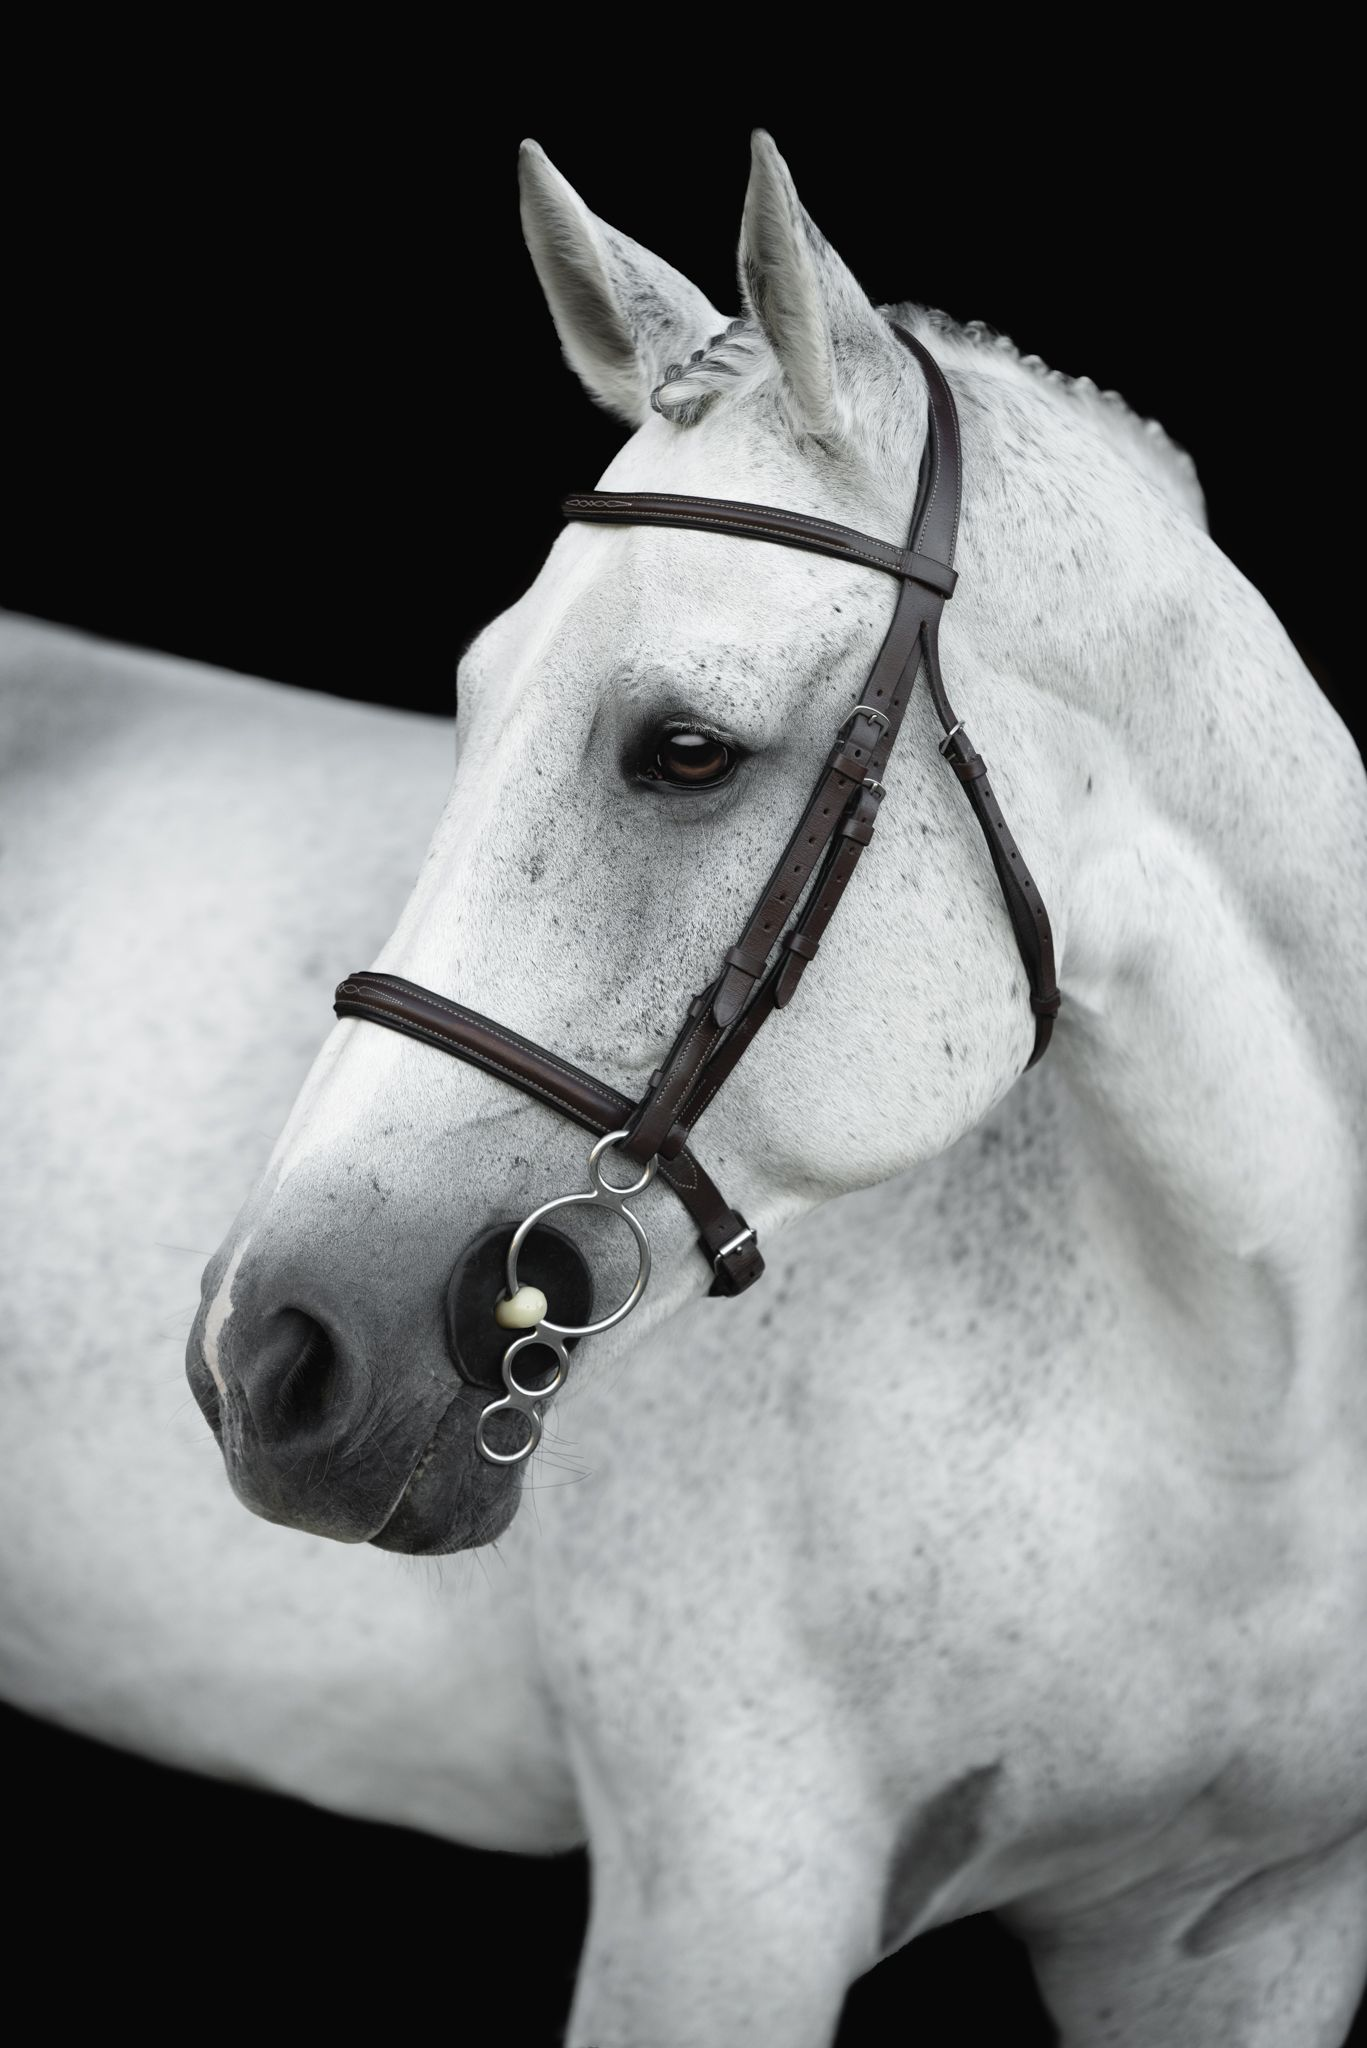 Closeup of white horse wearing bridle on black background